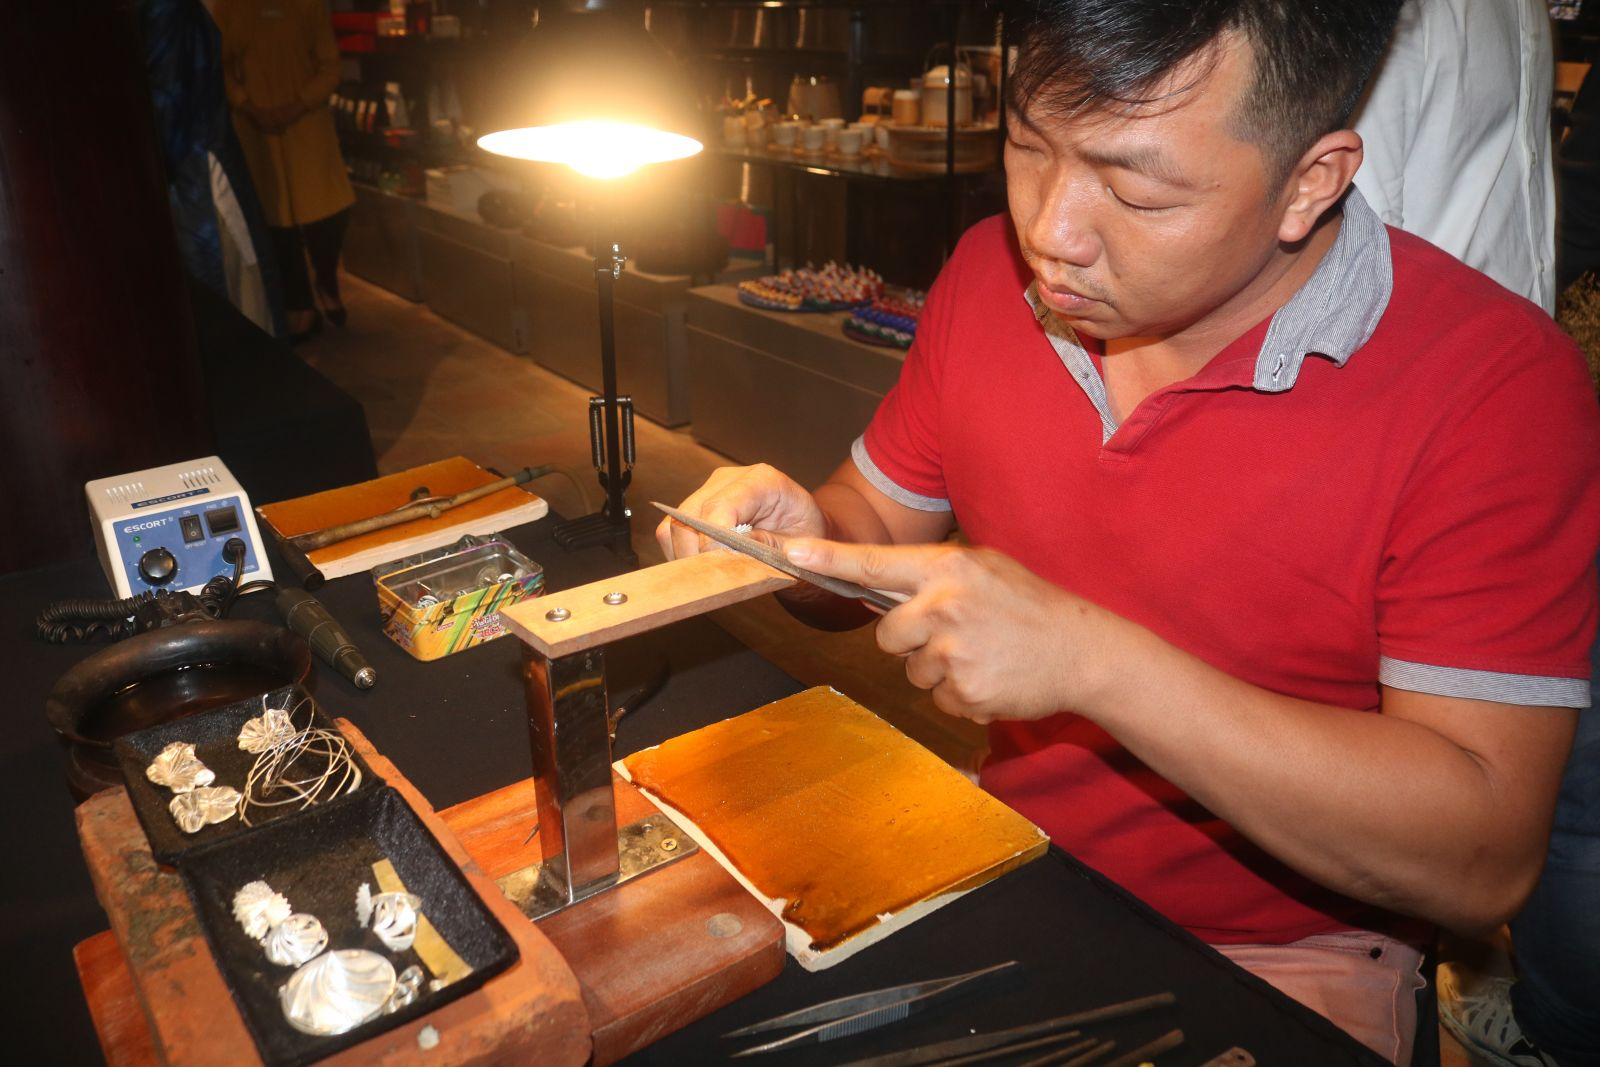 An artisan demonstrating the jewelry making process